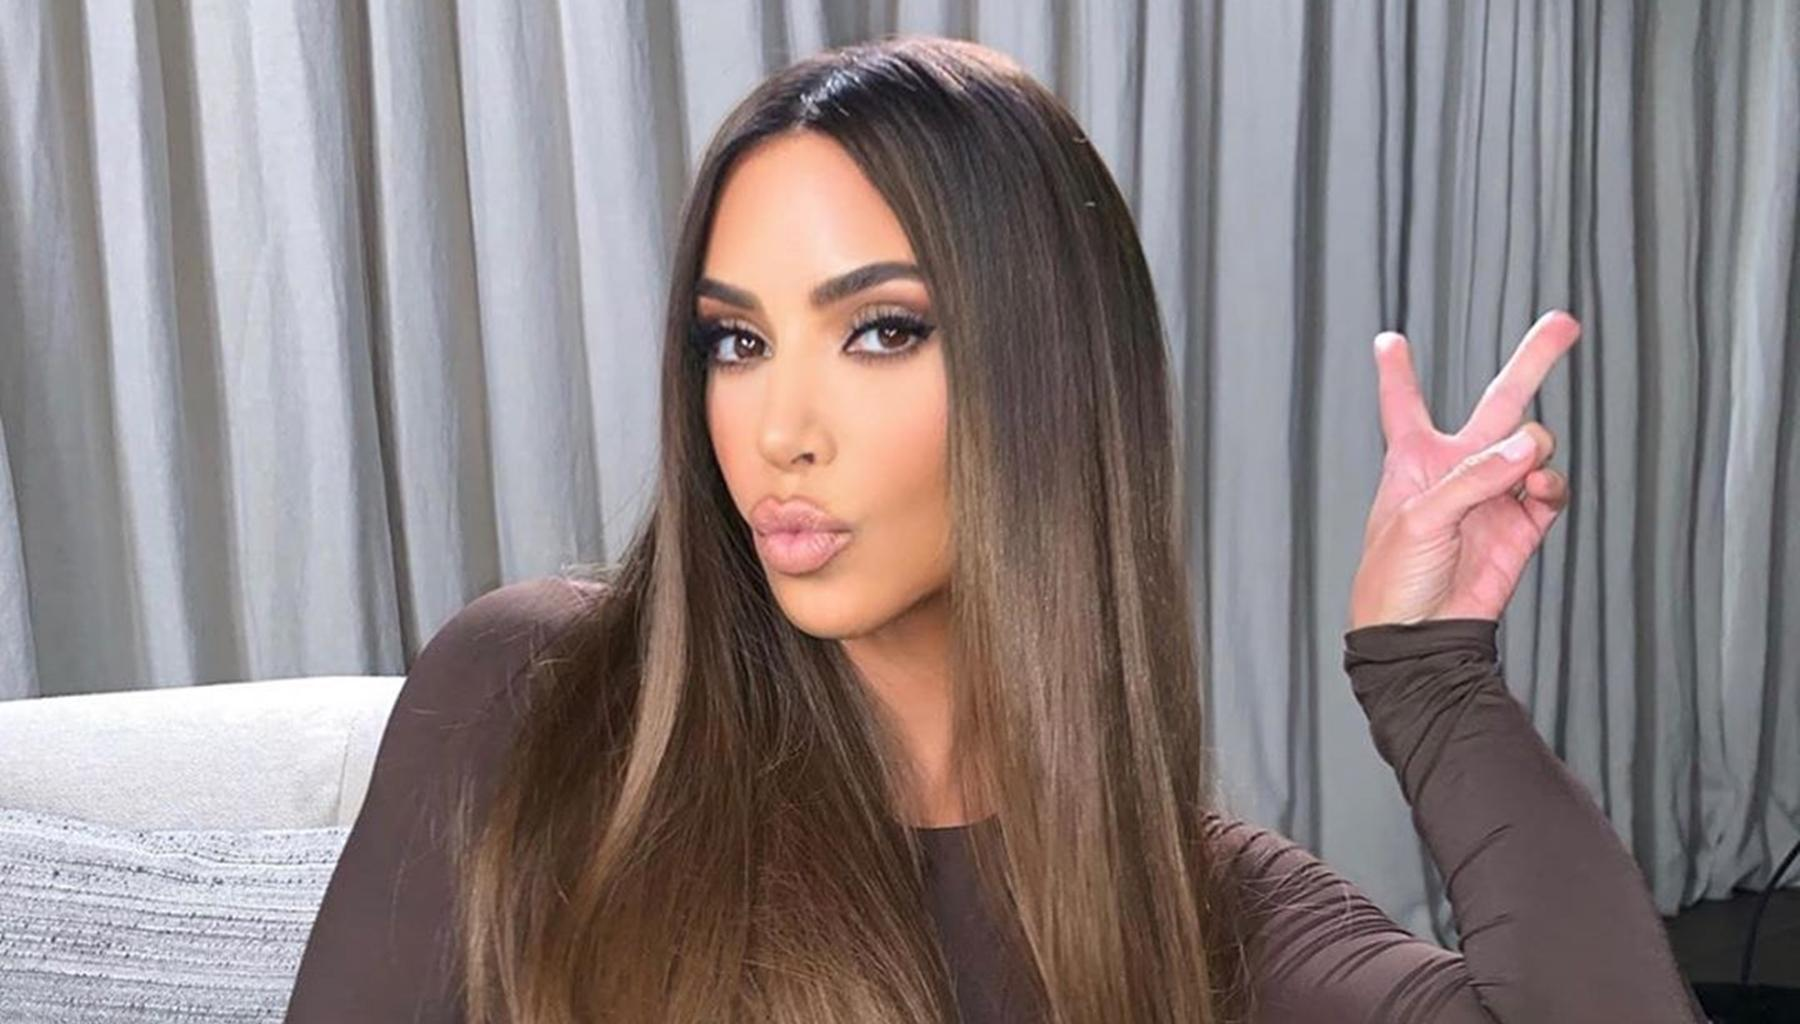 Kim Kardashian West's 2016 Robbery Will Be Made Into A Movie -- There Is A Big Reason Why Kanye West's Wife Does Not Find The Idea Funny